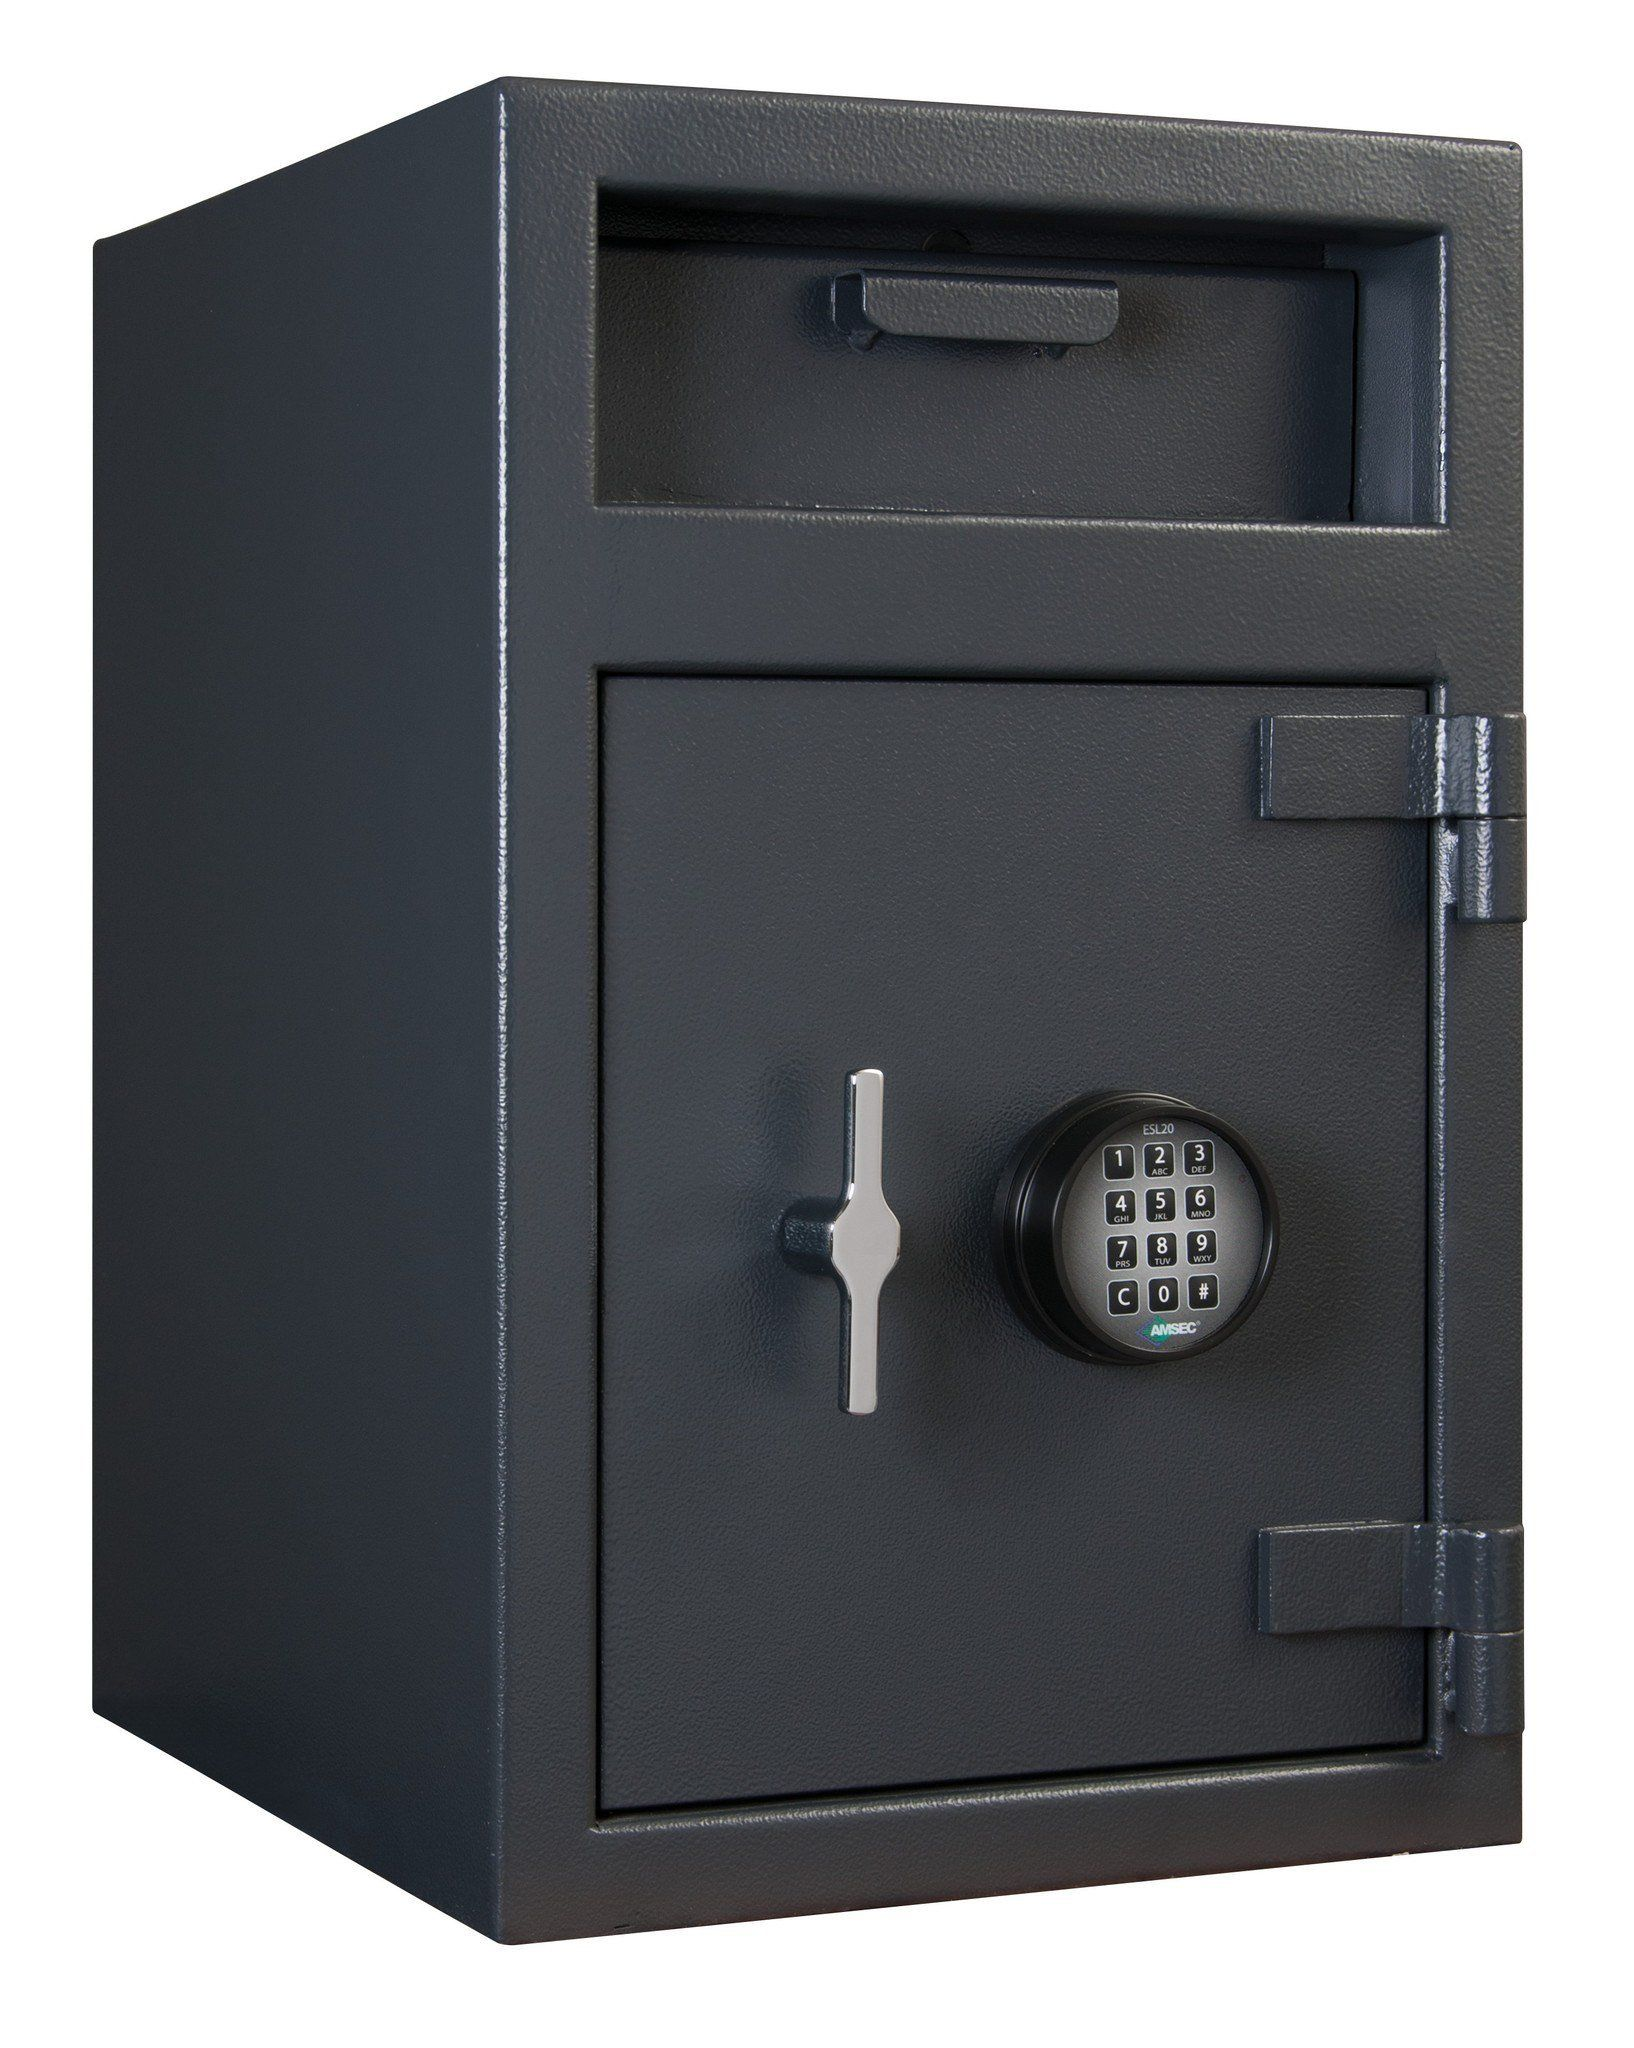 Did You Know That The Lockup Storage Offers Secure Shaded